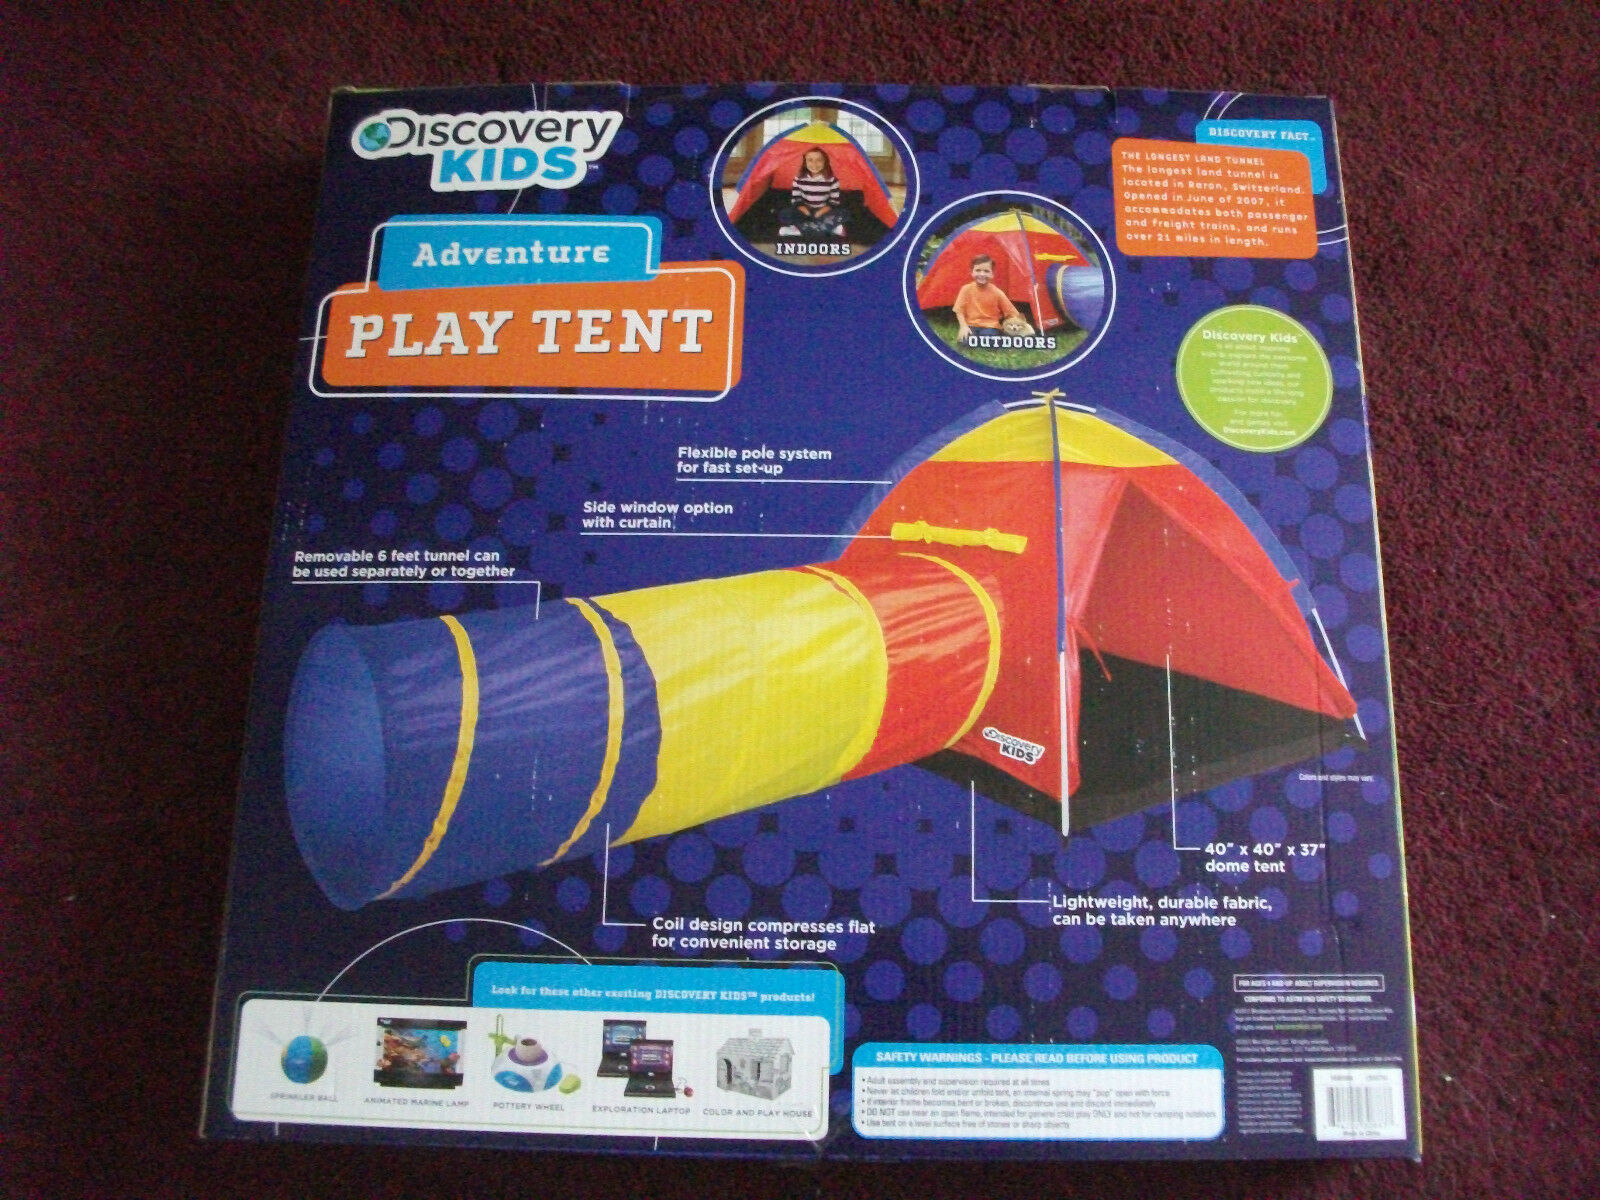 Discovery Kids Adventure 2 PC Play Tent u0026 Tunnel Set Indoor Outdoor | eBay & Discovery Kids Adventure 2 PC Play Tent u0026 Tunnel Set Indoor ...